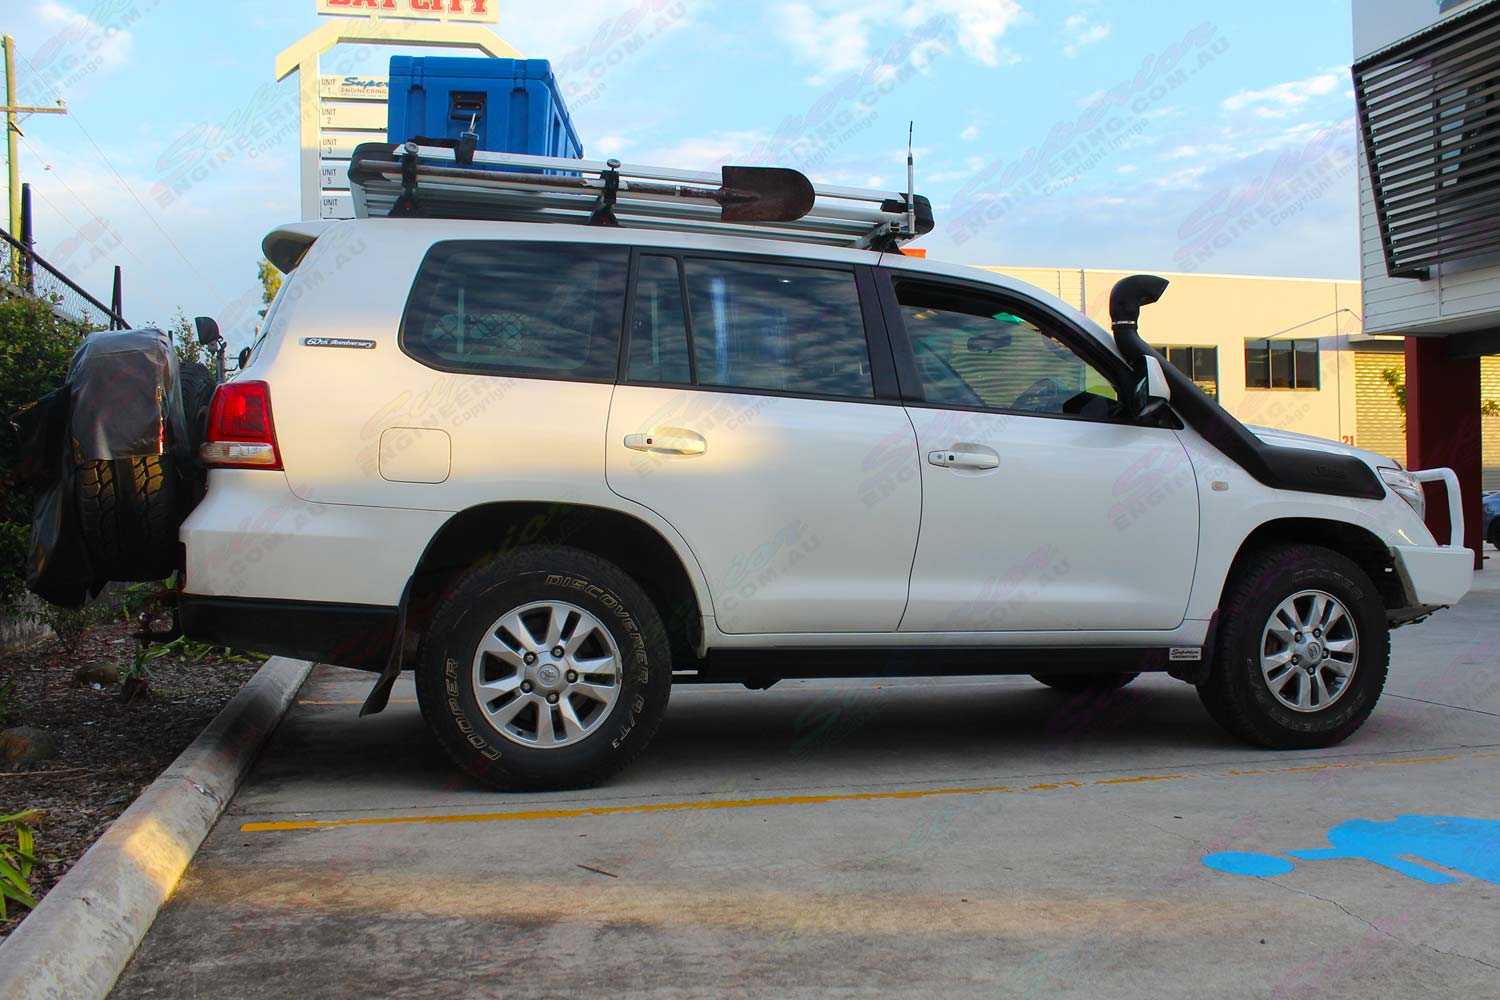 Right side view of a white 200 Series Toyota Landcruiser fitted with a set of heavy duty Superior stealth rock sliders and engine guard